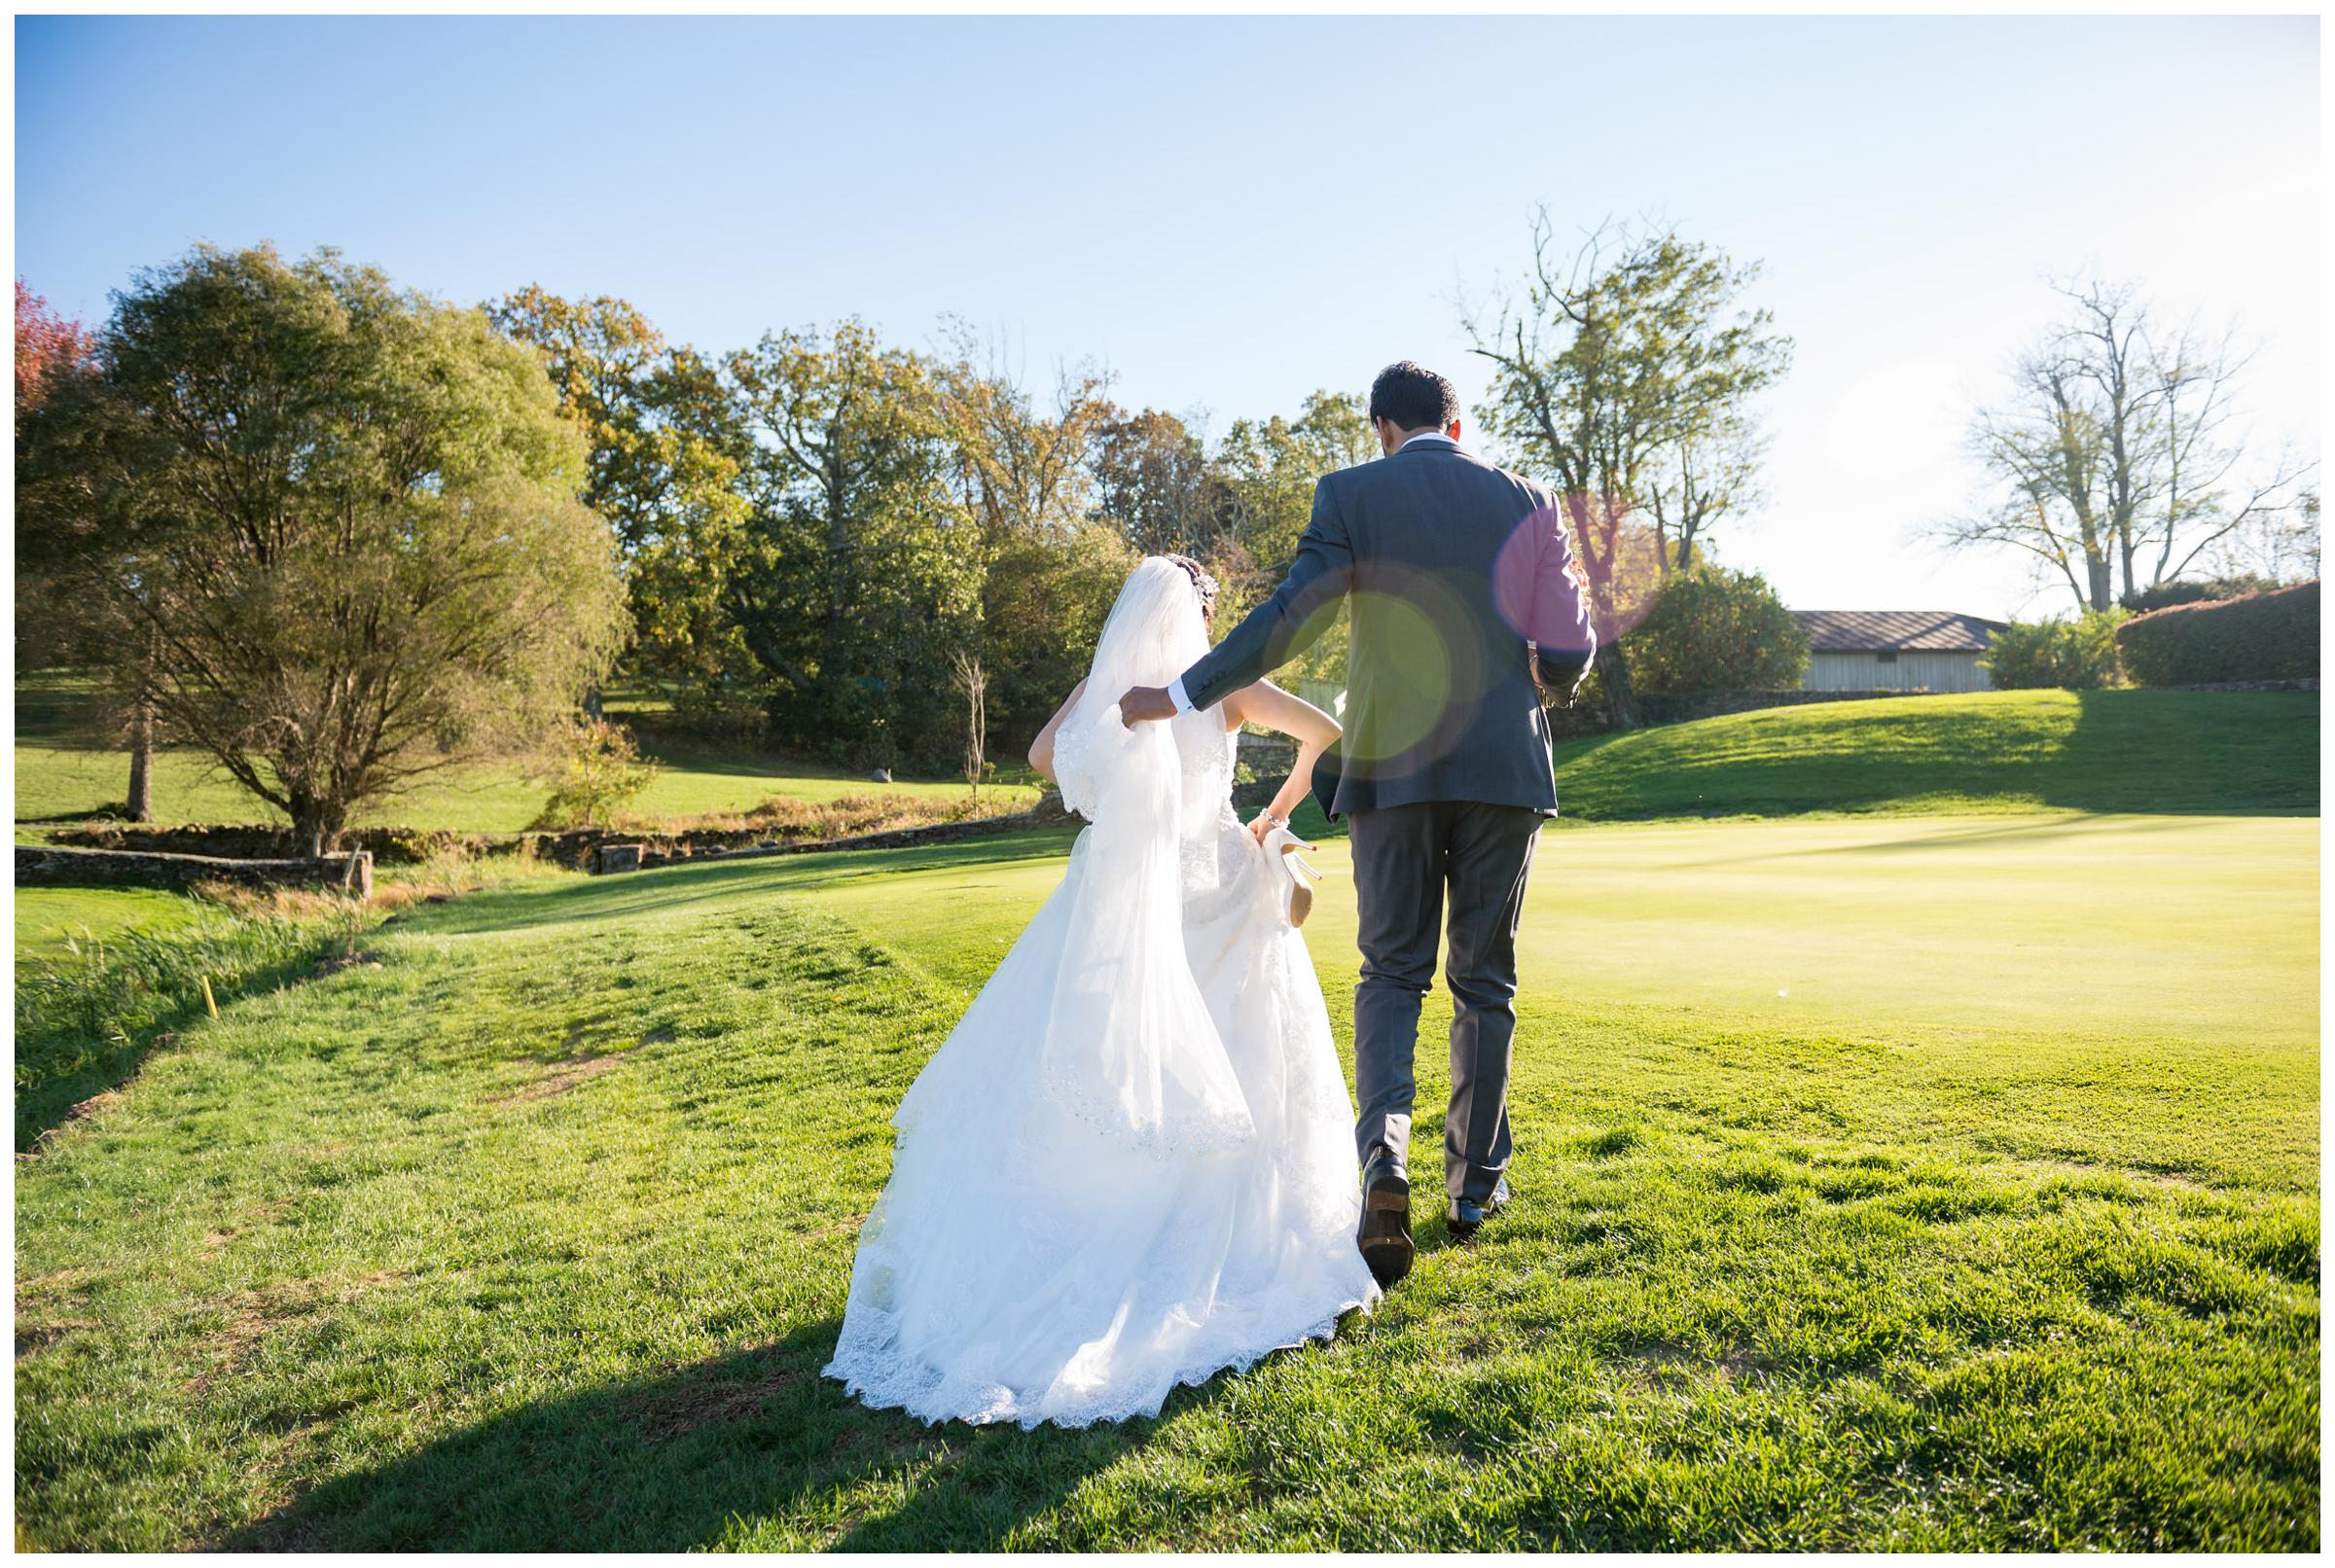 Groom helping bride up hillside at Stoneleigh Golf Club